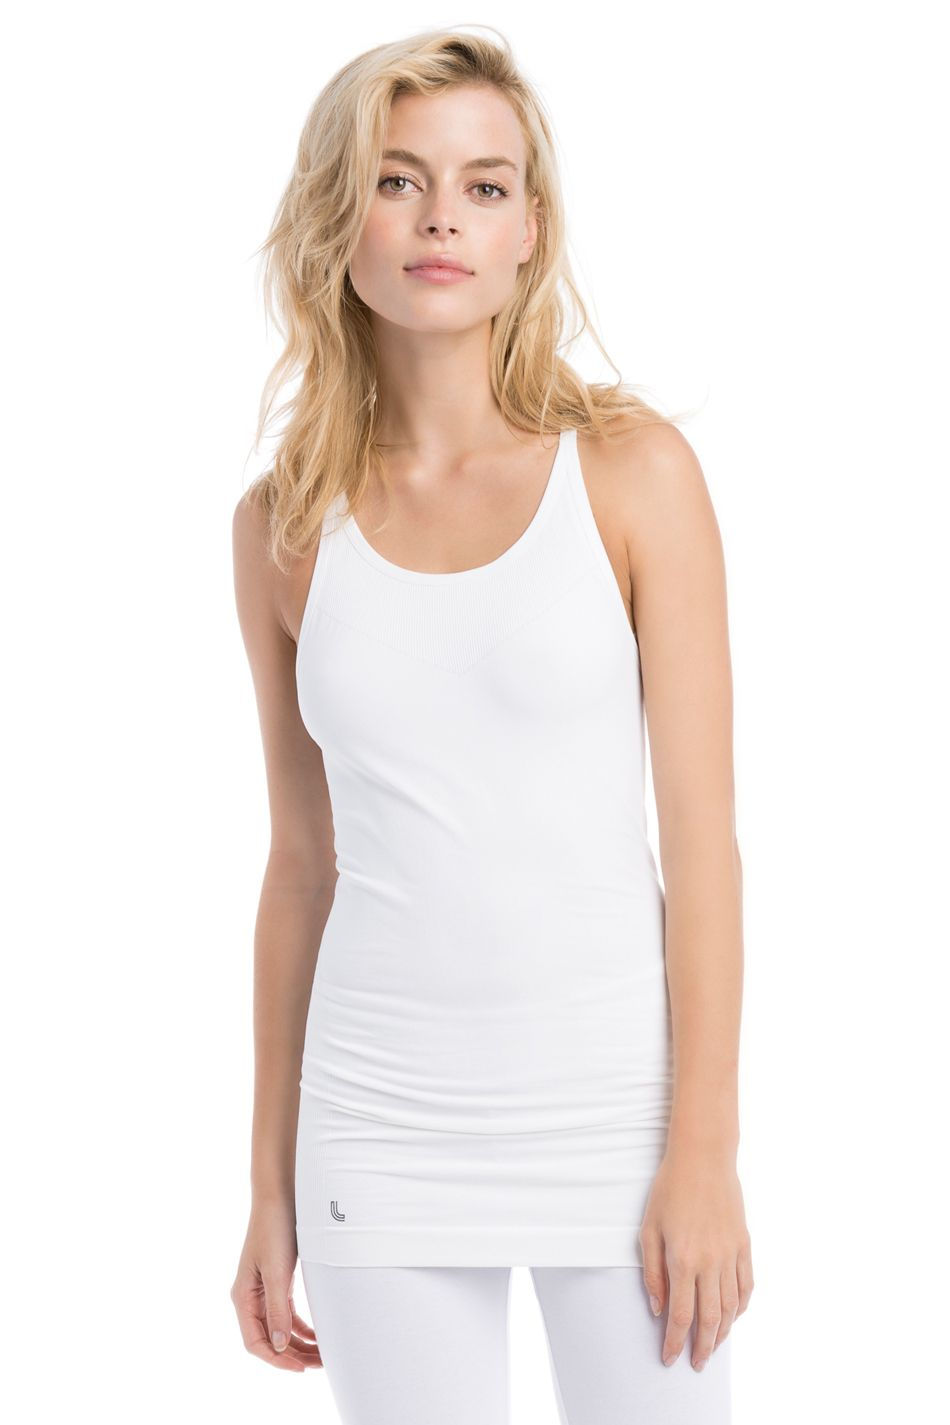 This Elegant Tank Top Is Pose Perfect With Cooling Mesh Inserts